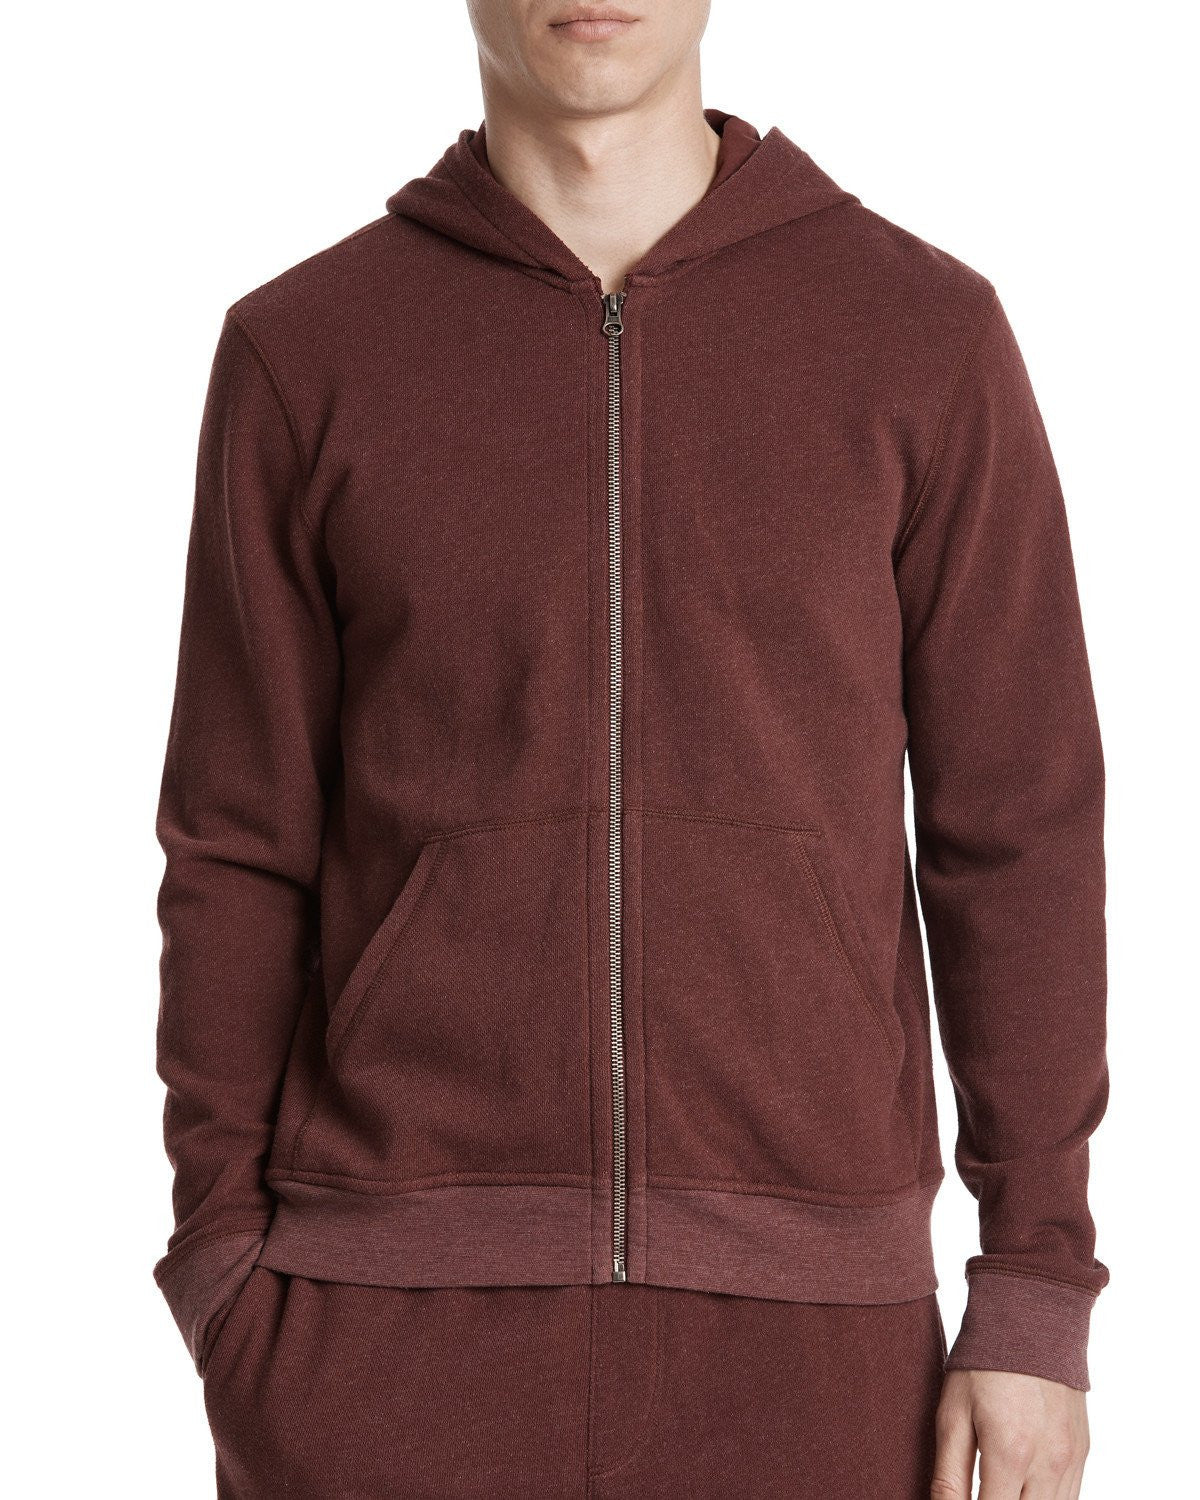 ATM French Terry Zip-Up Hoodie